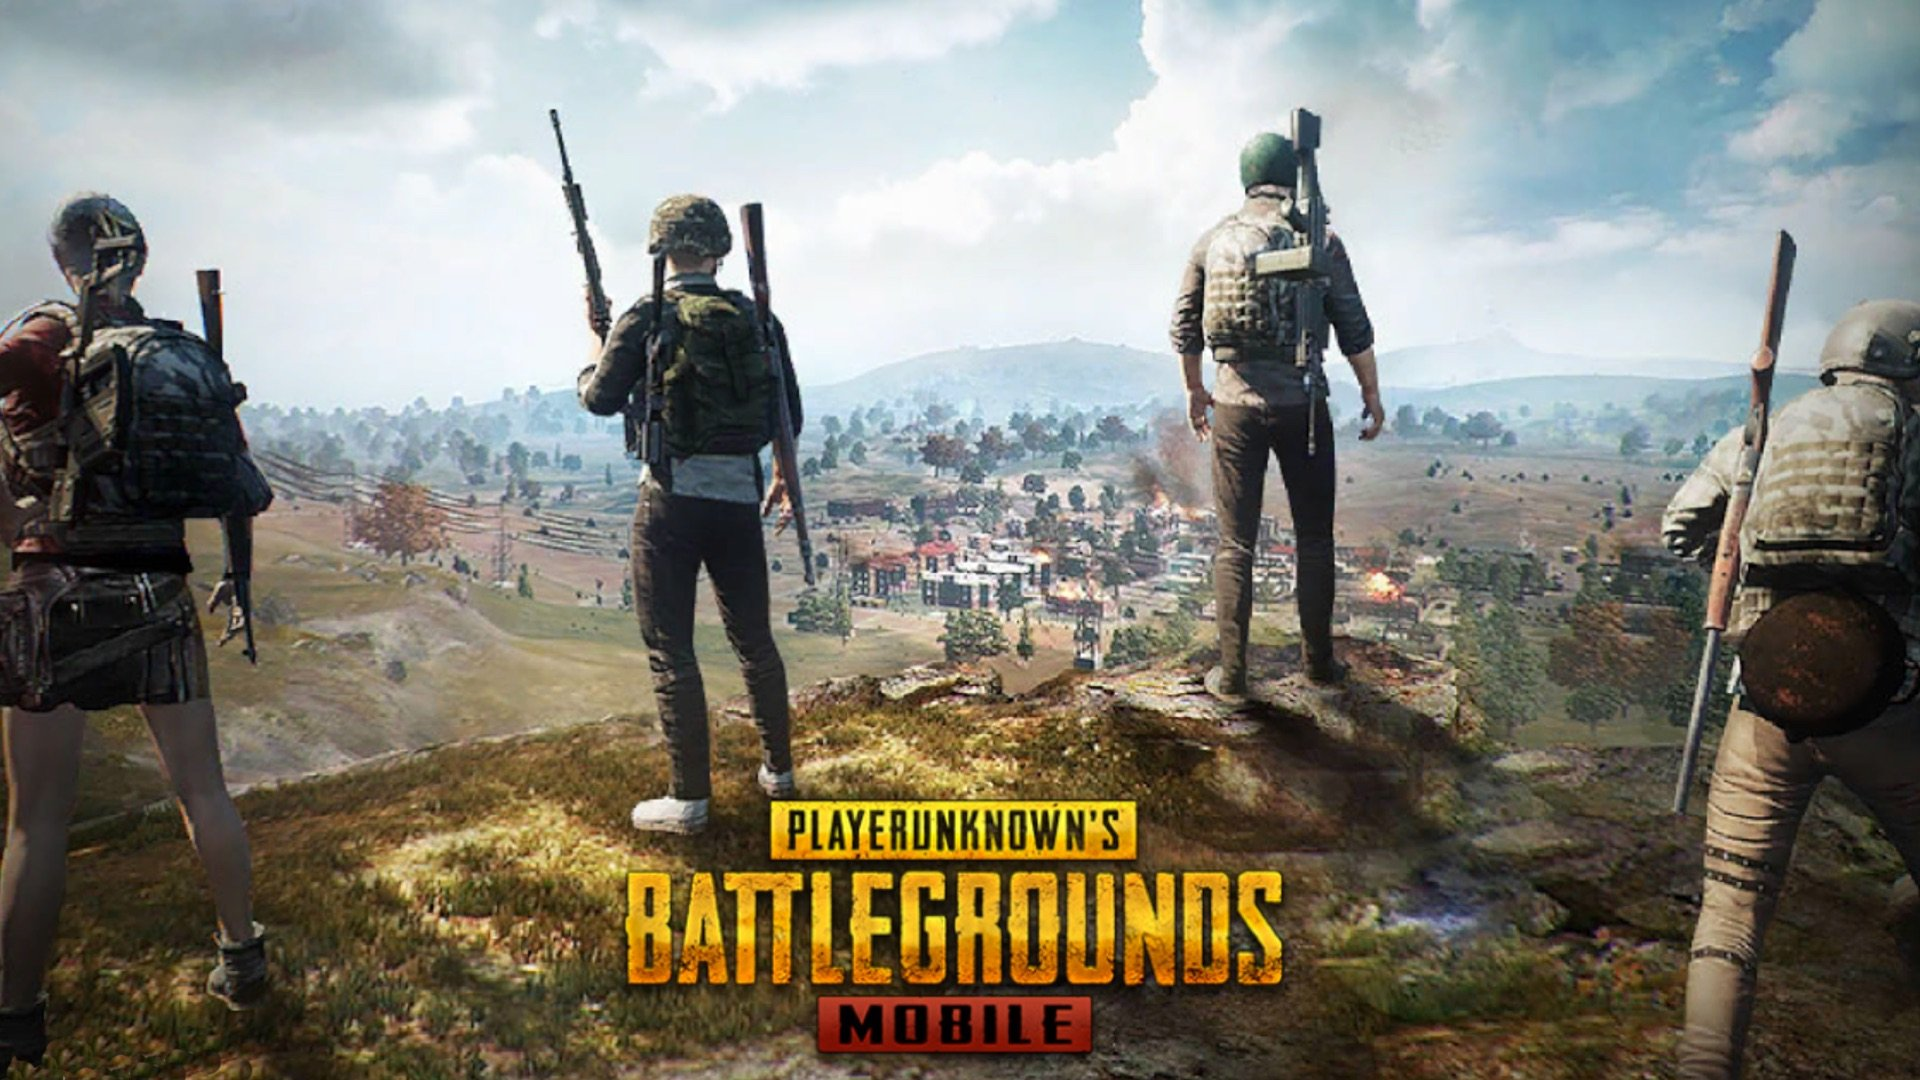 Pubg Wallpaper New Season: PUBG Is The Ultimate Battle Royale Game For Android